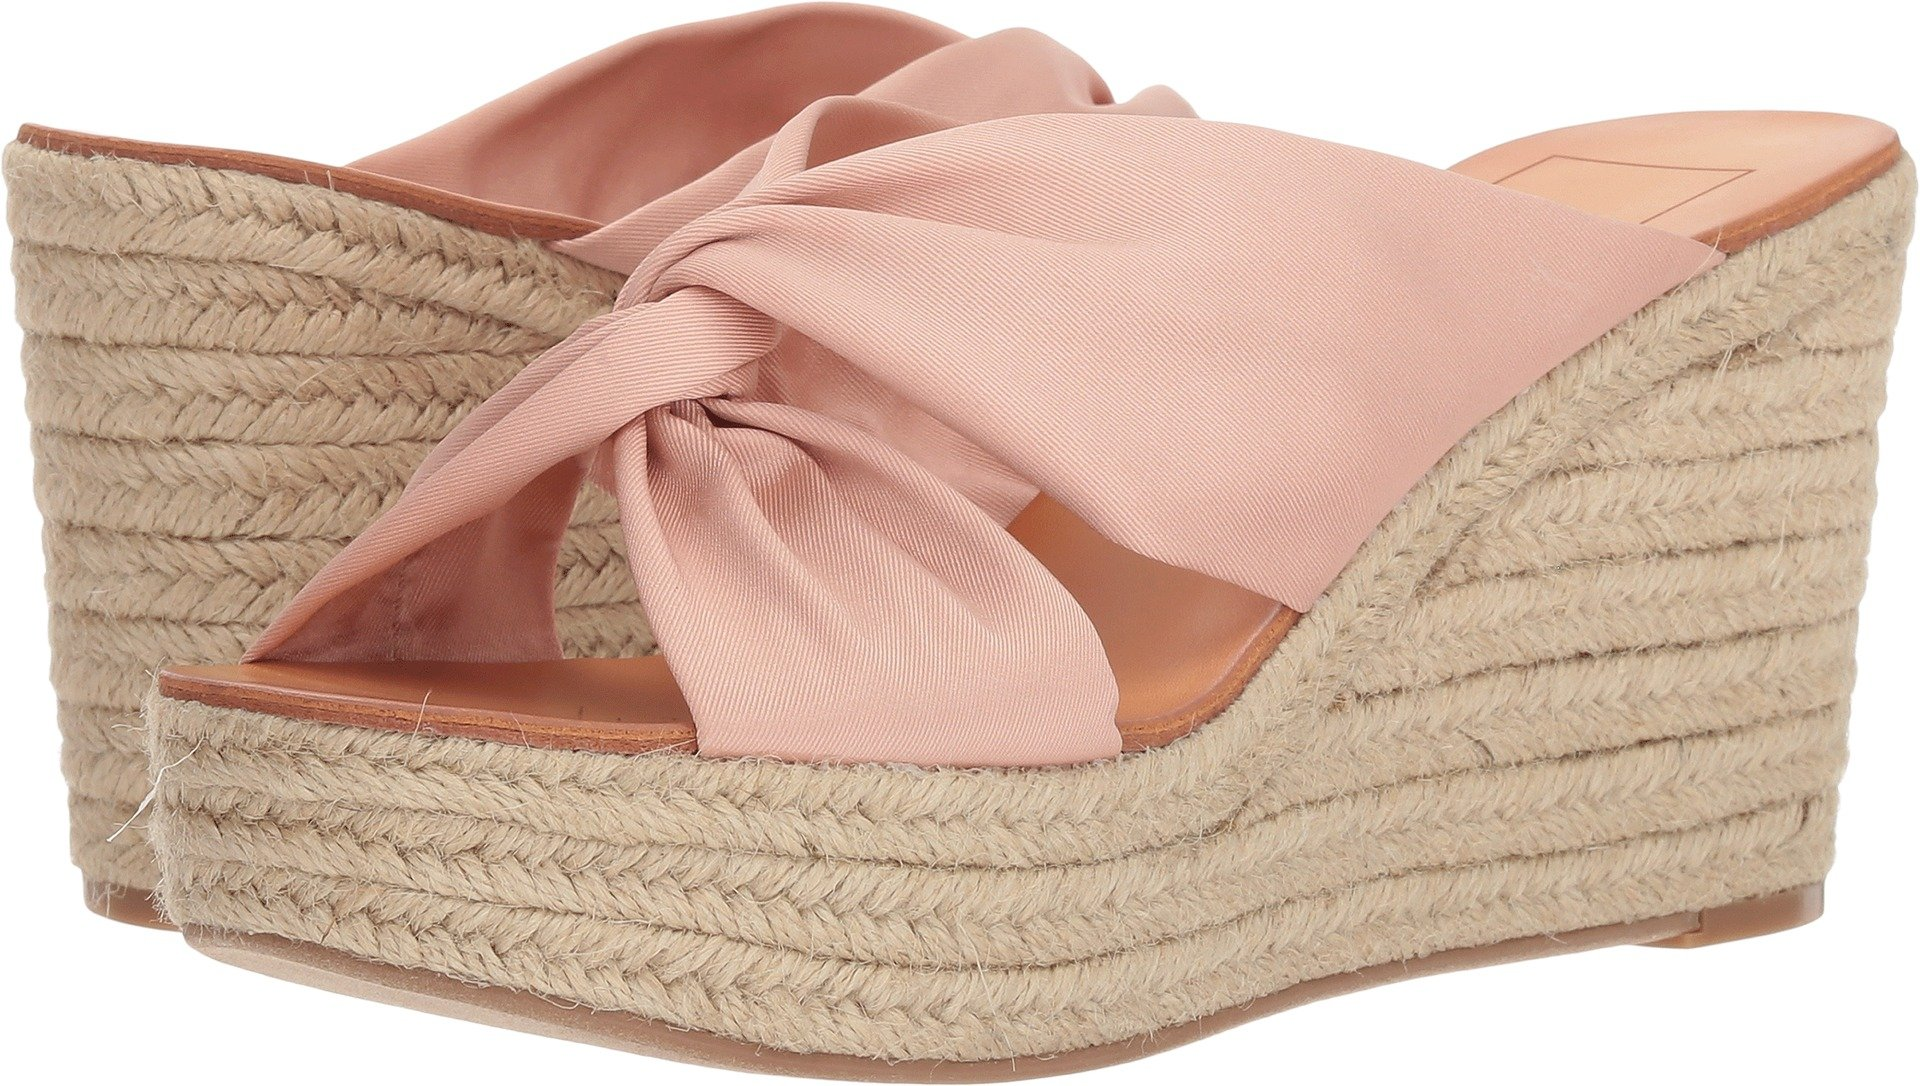 Dolce Vita Women's Blaine Blush Fabric 9 M US